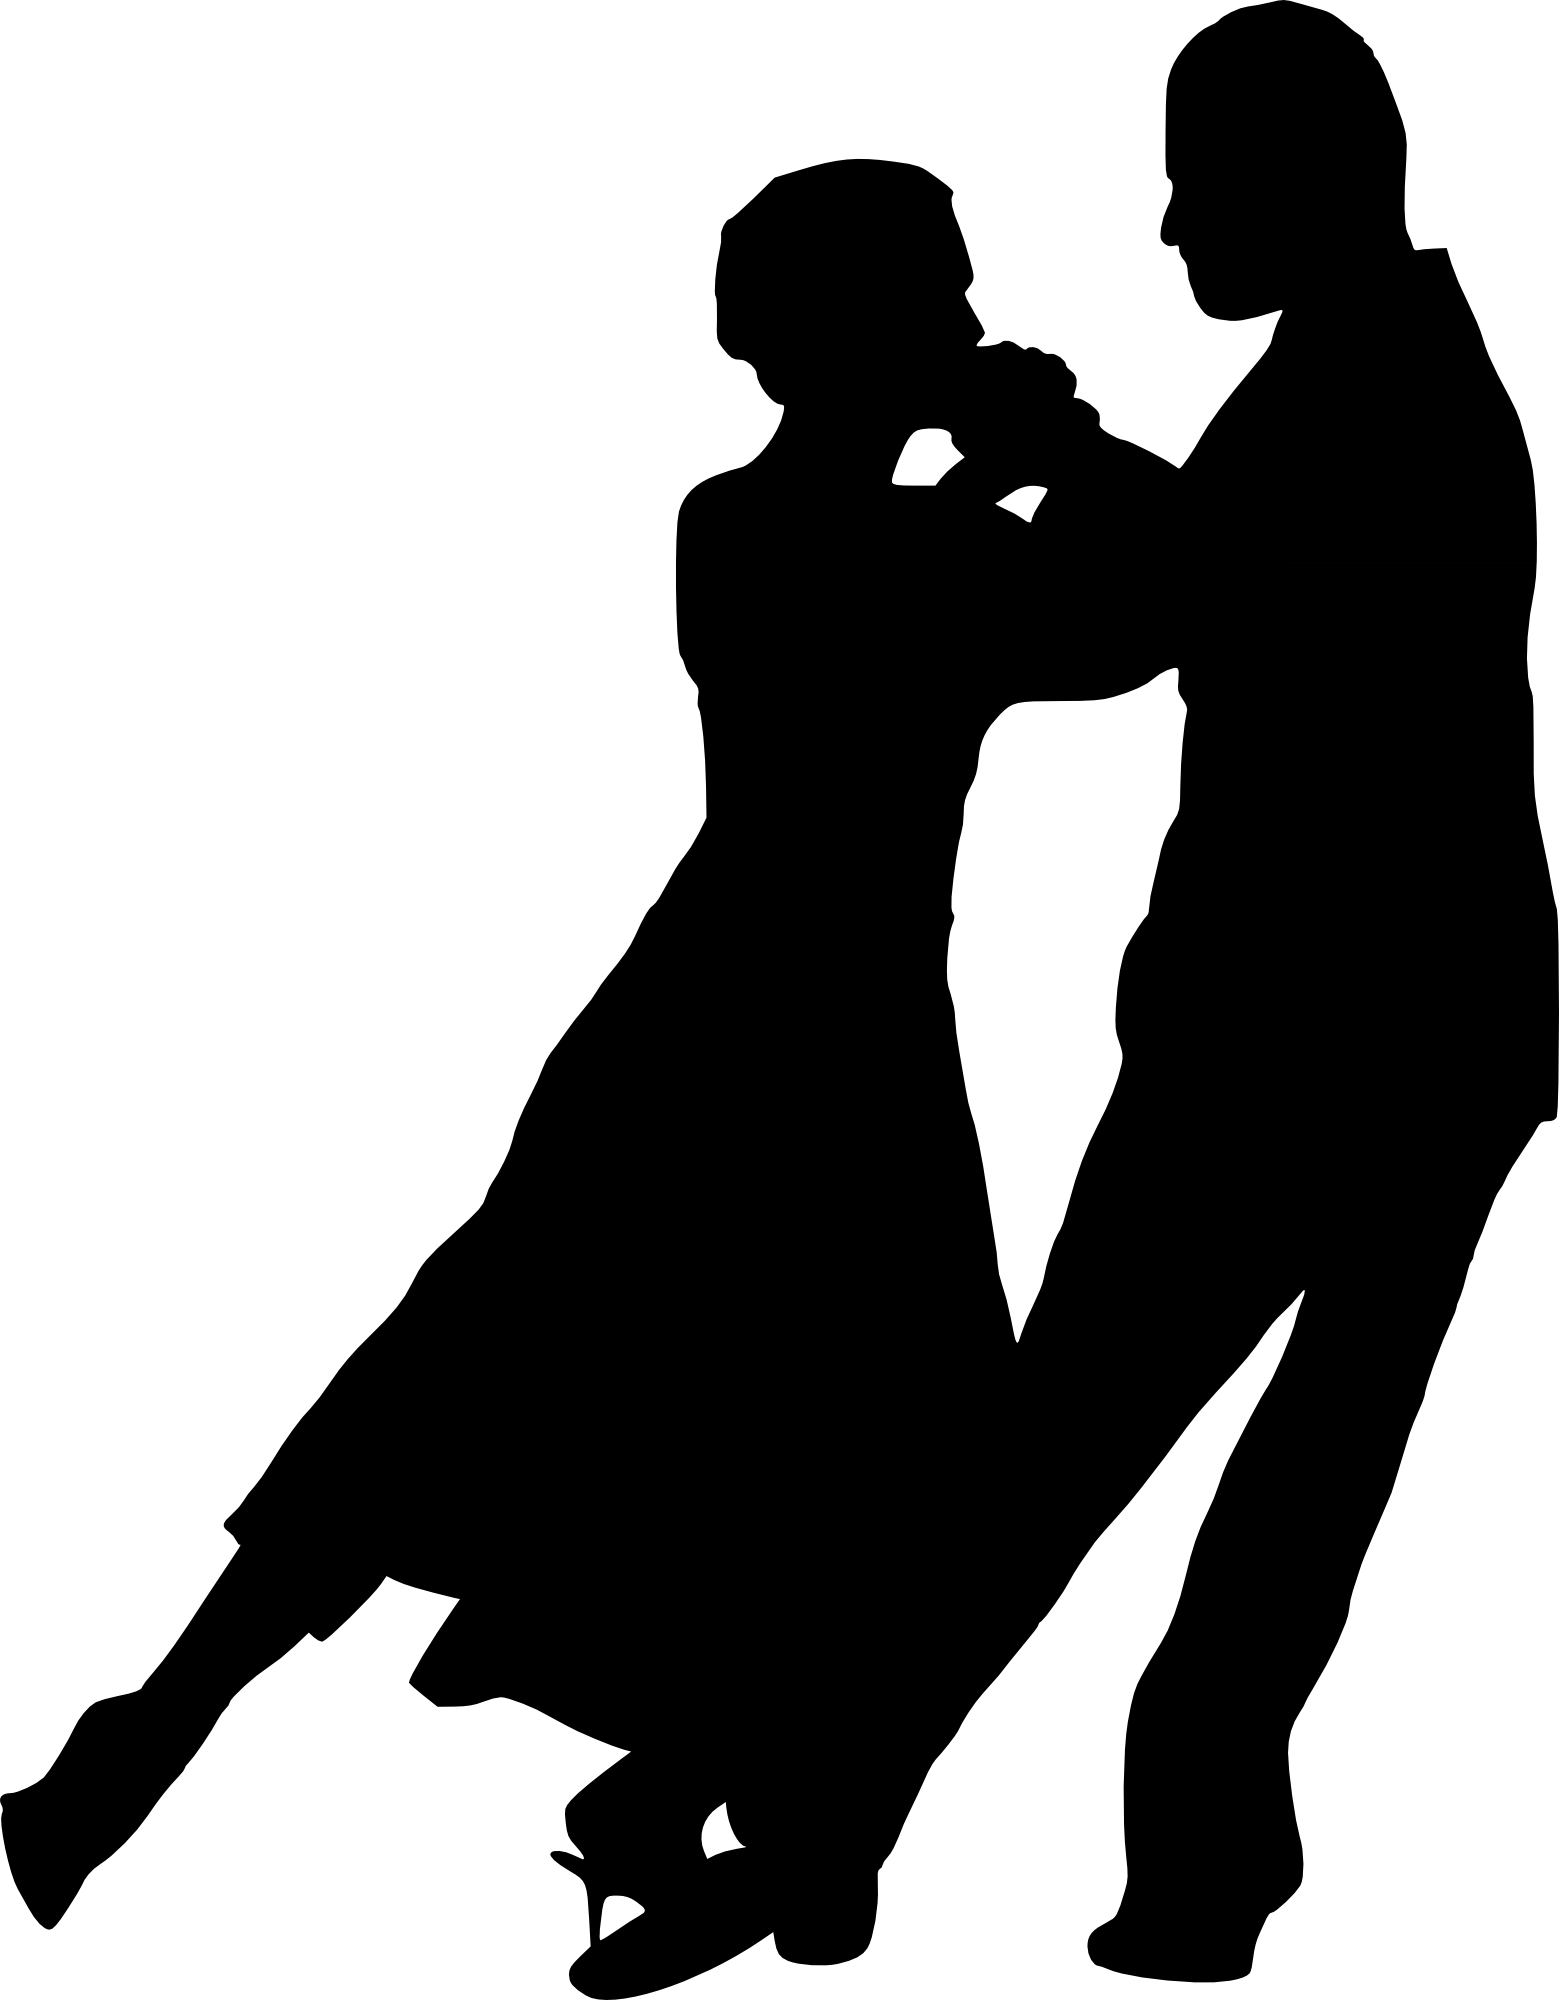 Salsa dance silhouette png. Couple dancing transparent